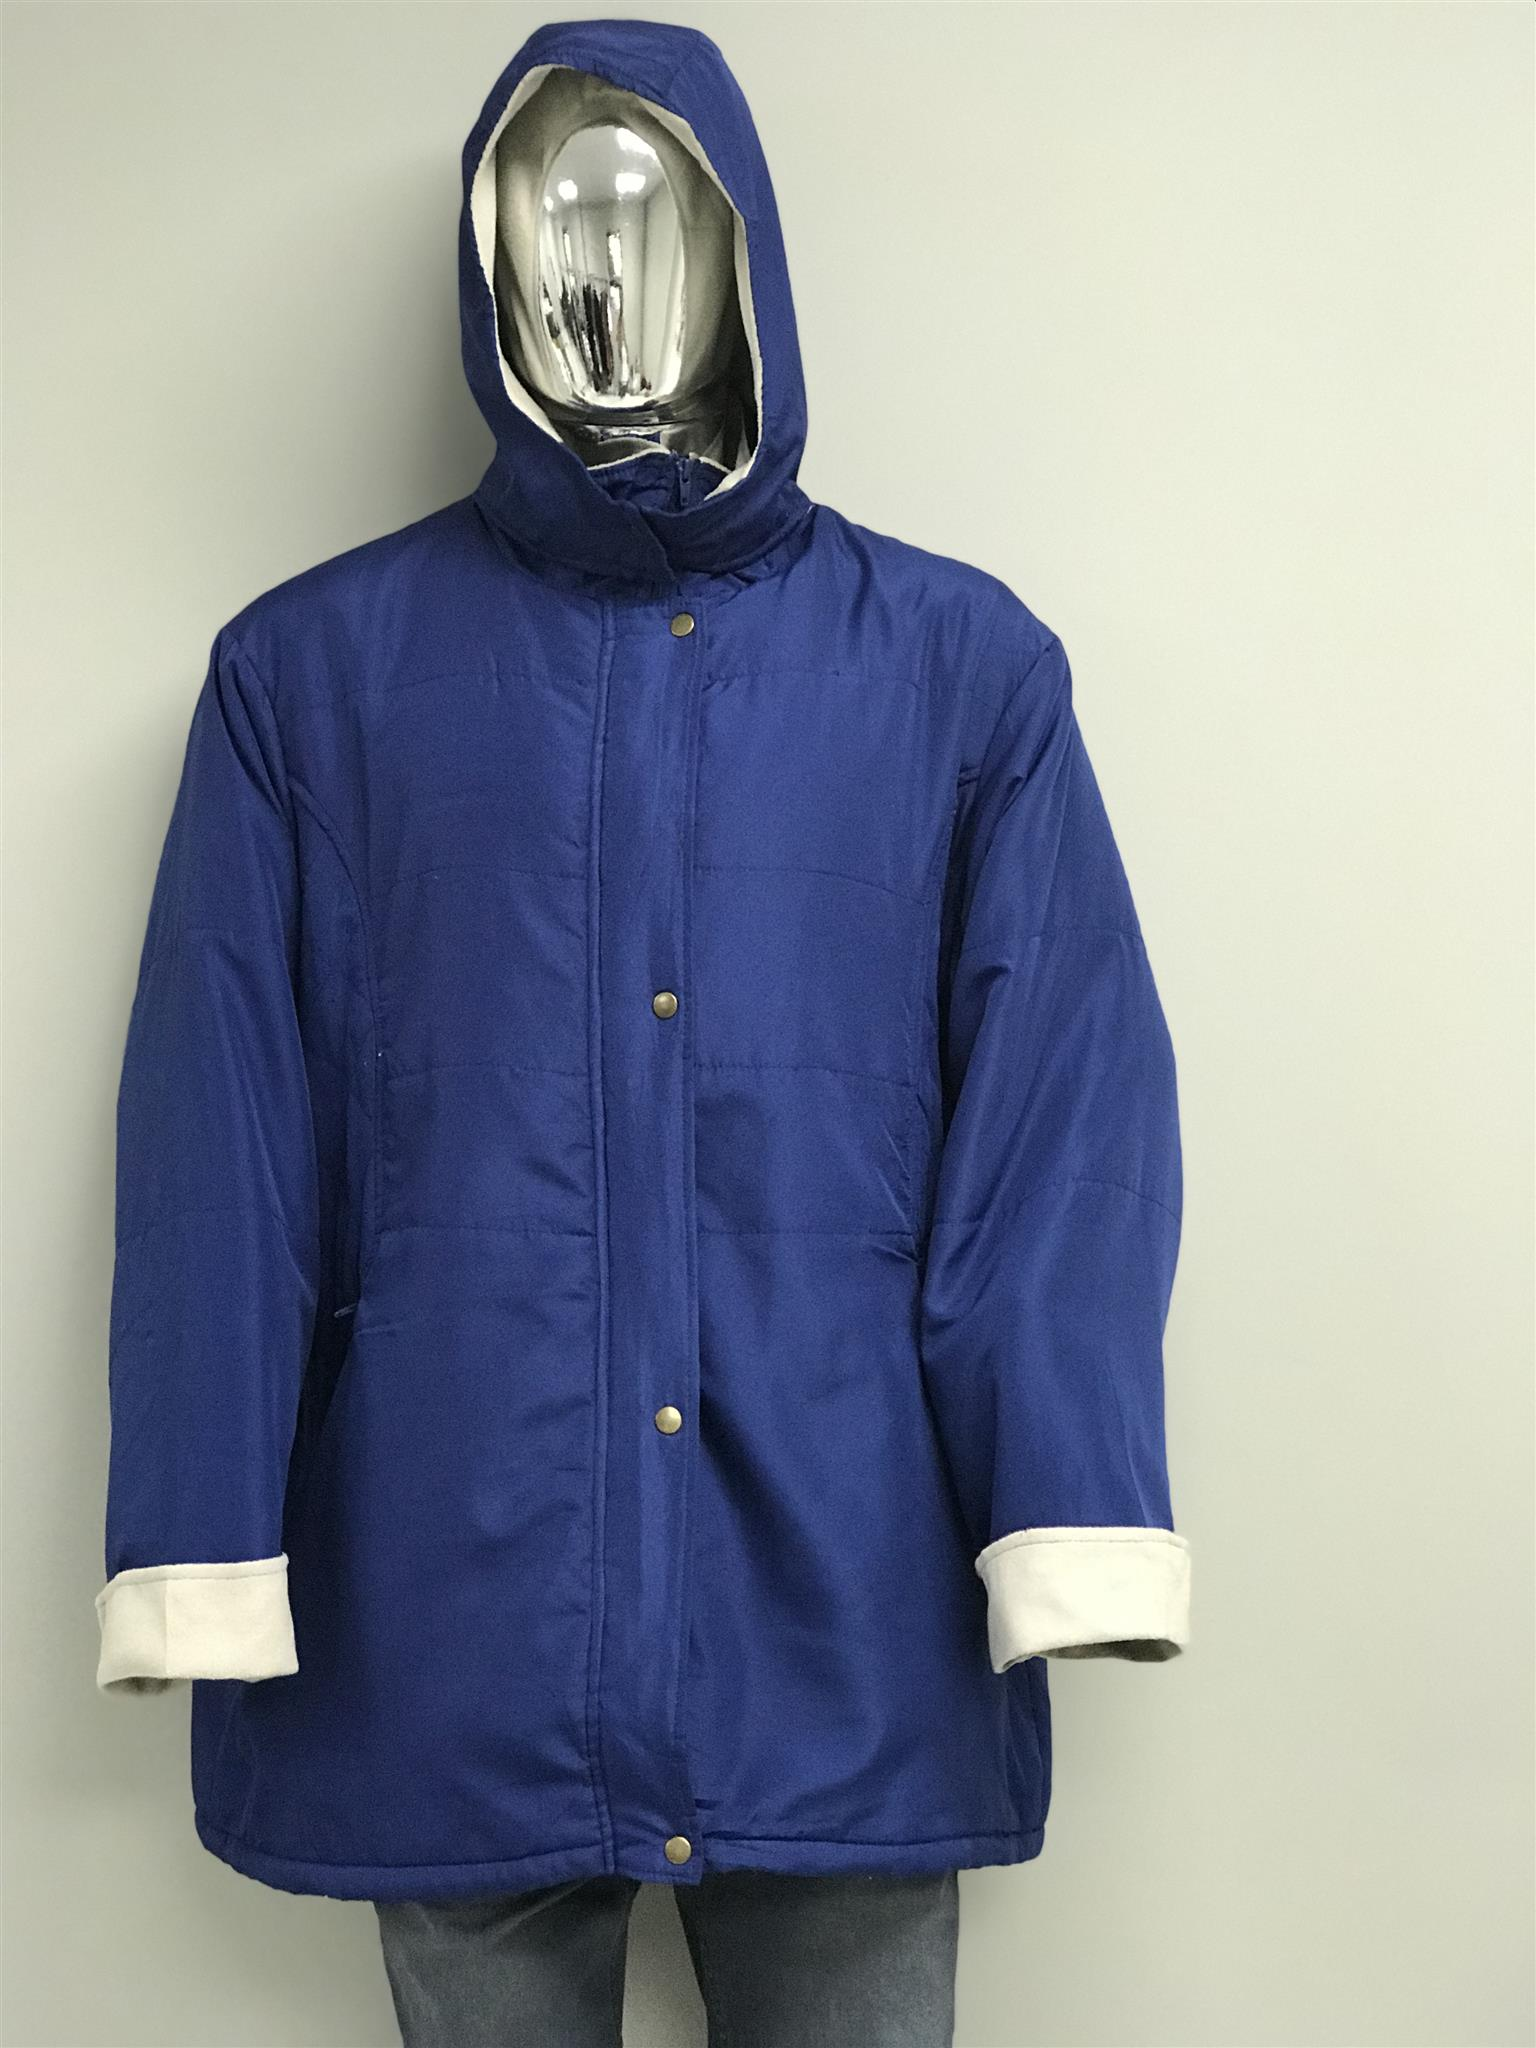 Pay R2490 for 45kg bale of Adult Anoraks BUY A BALE. MAKE YOUR OWN CASH